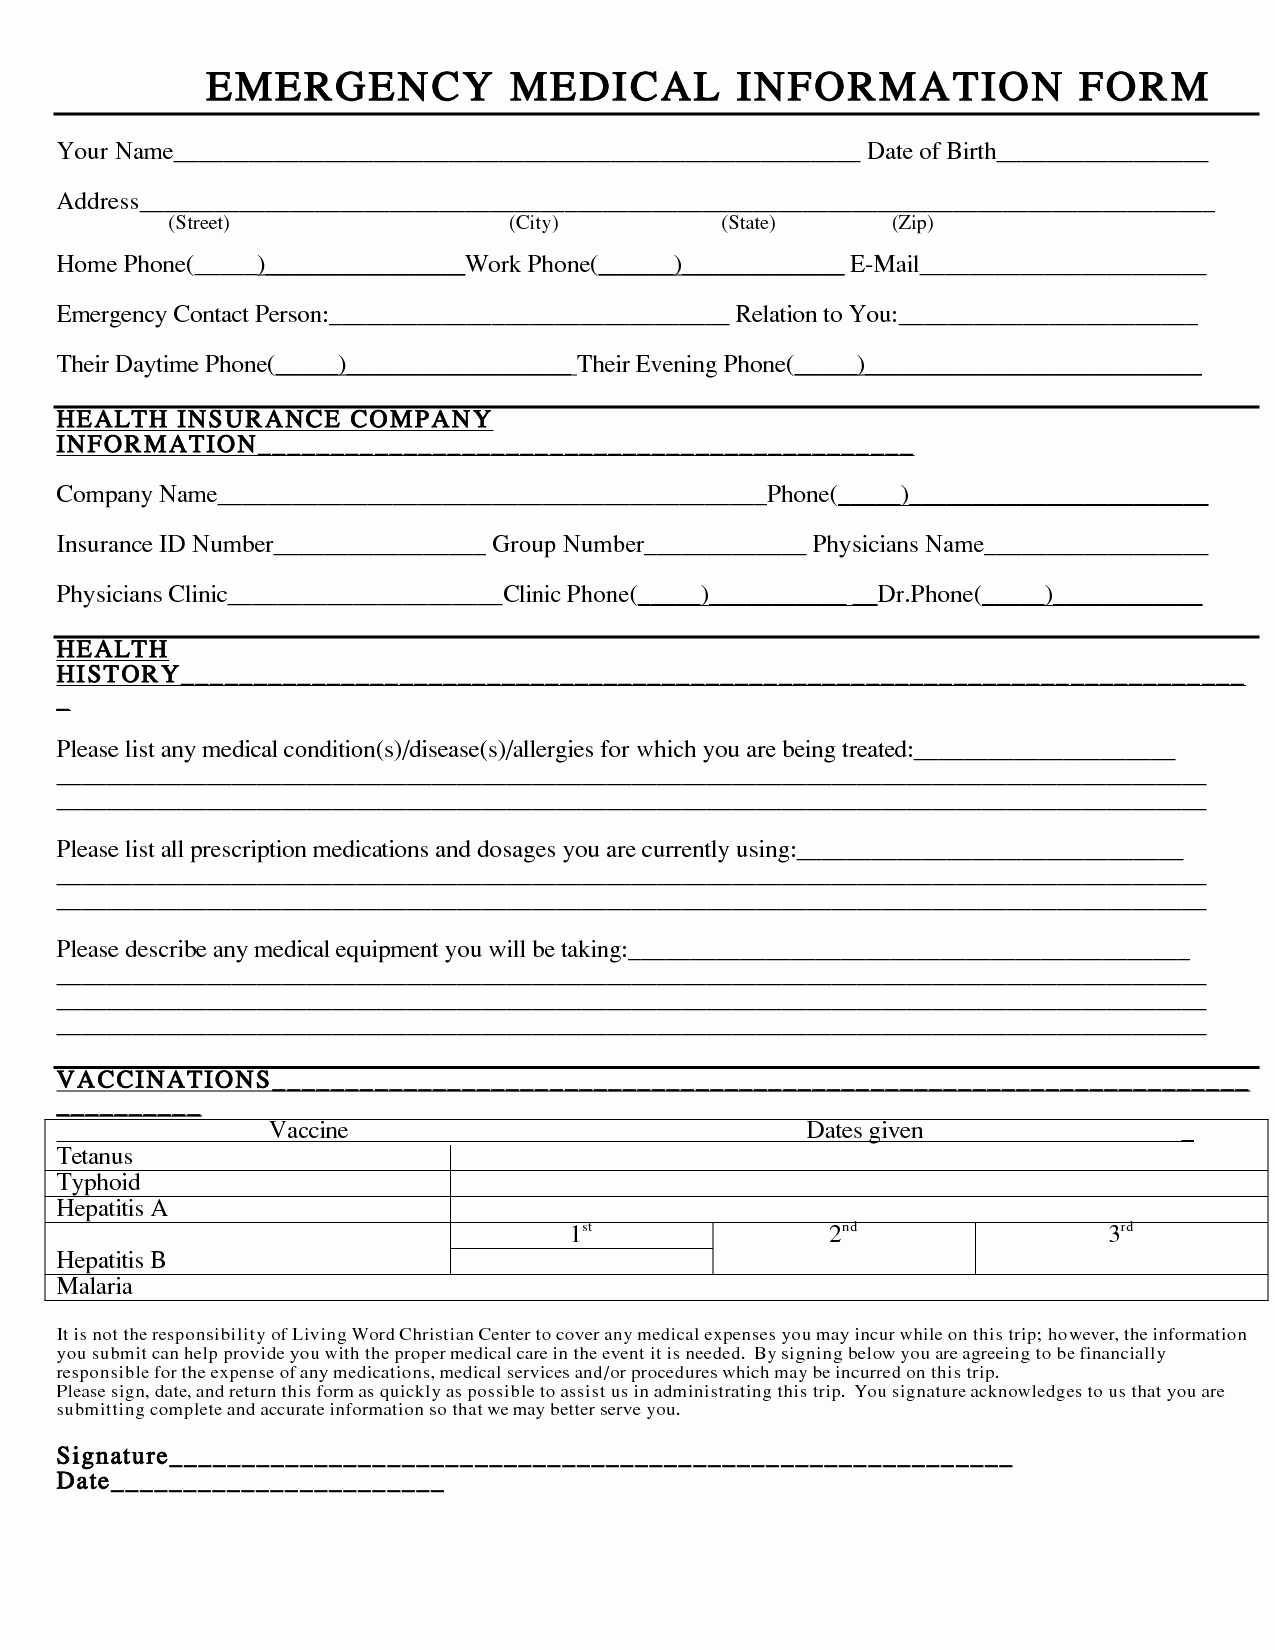 post printable emergency information form